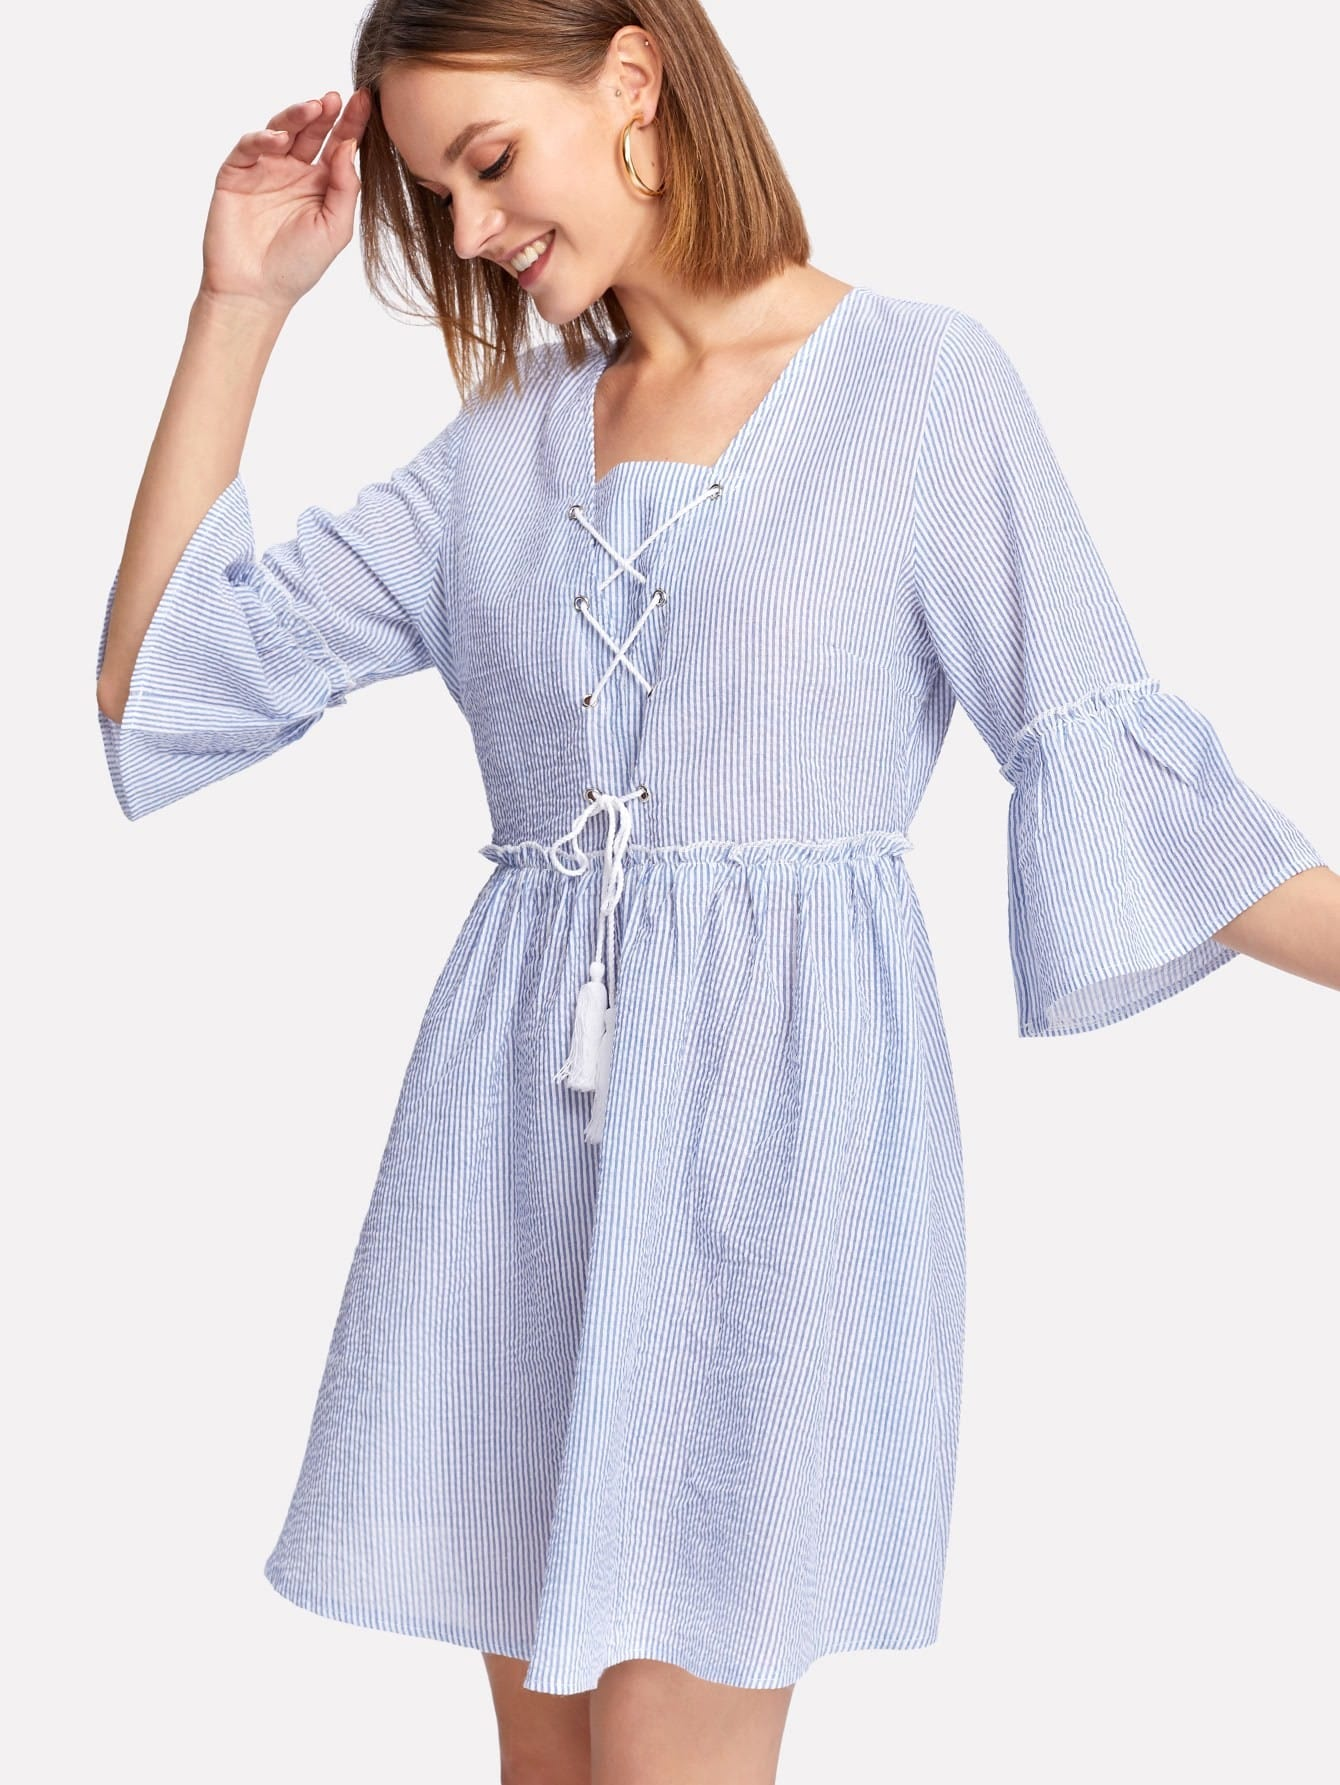 Tassel Lace Up Front Ruffle Cuff And Hem Dress political participation of the tea tribes community